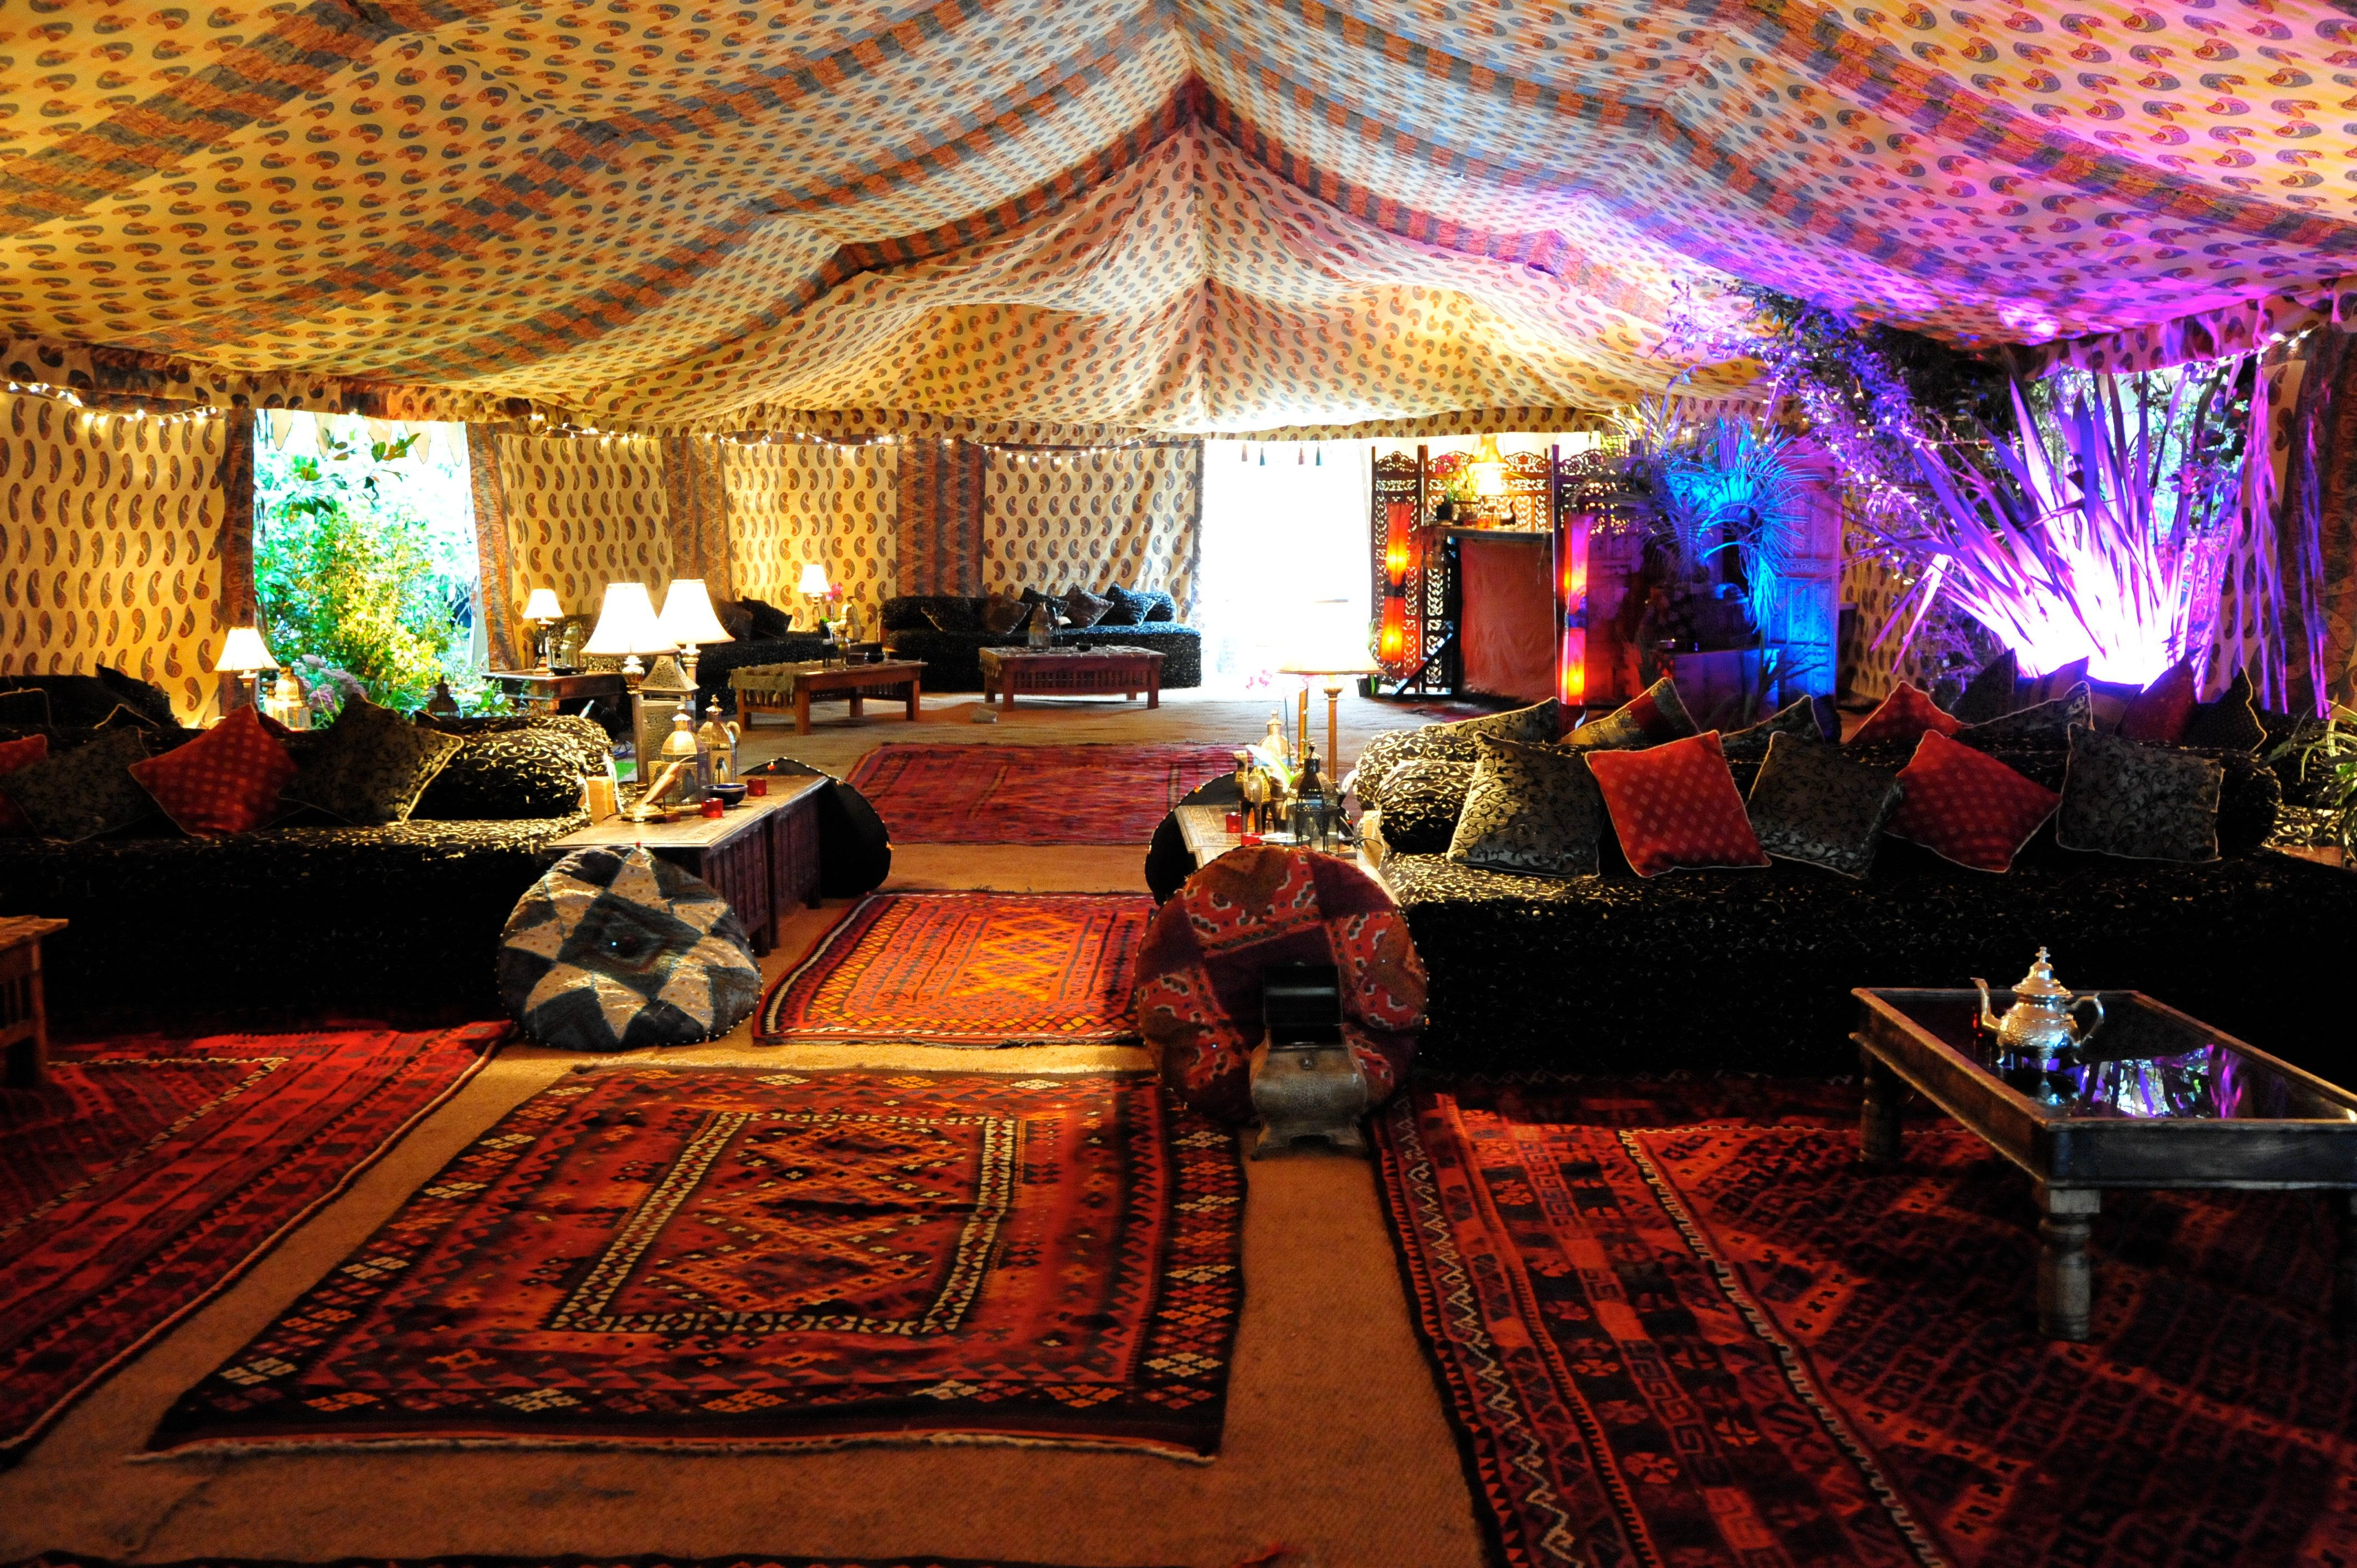 Bedouin Tents hire Moroccan Indian Arabian tents and marquees for private events weddings festivals corporate clients and parties. & Hire Bedouin Tents u0026 Marquees Luxury wedding private party ...